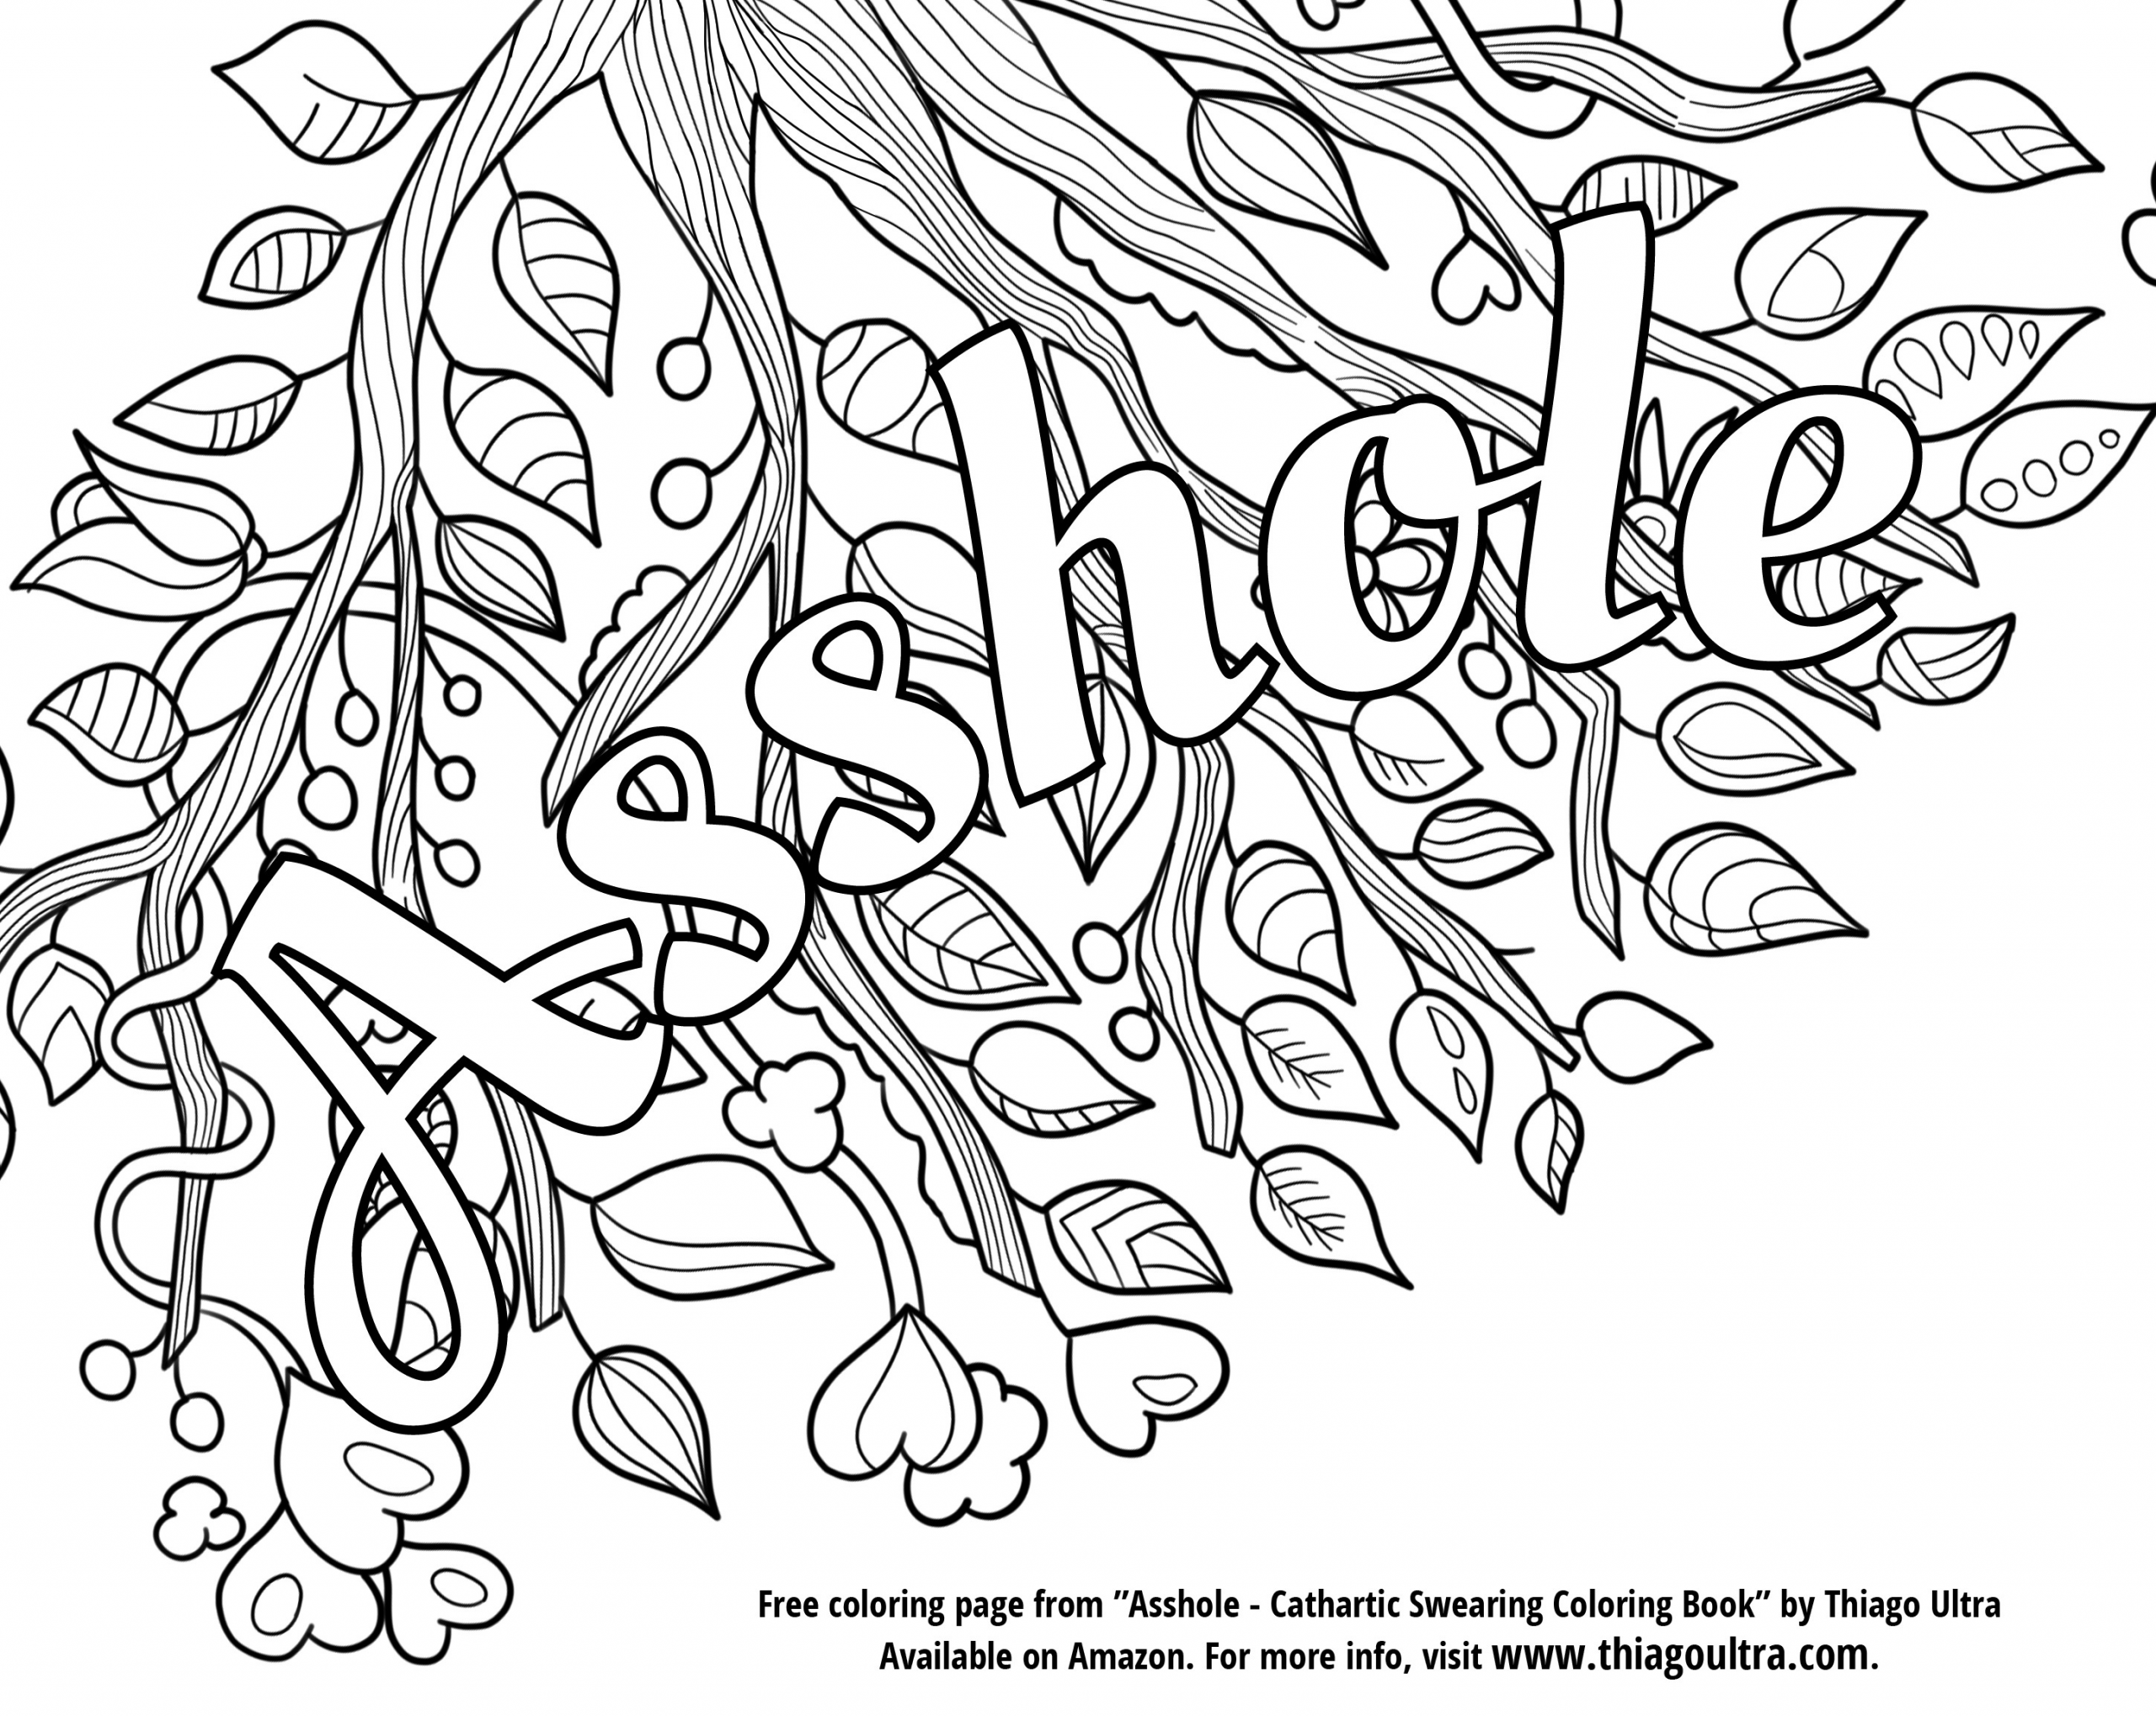 Adult Coloring Pages Swear Words  Swear Word Printable Adult Coloring Pages Sketch Coloring Page